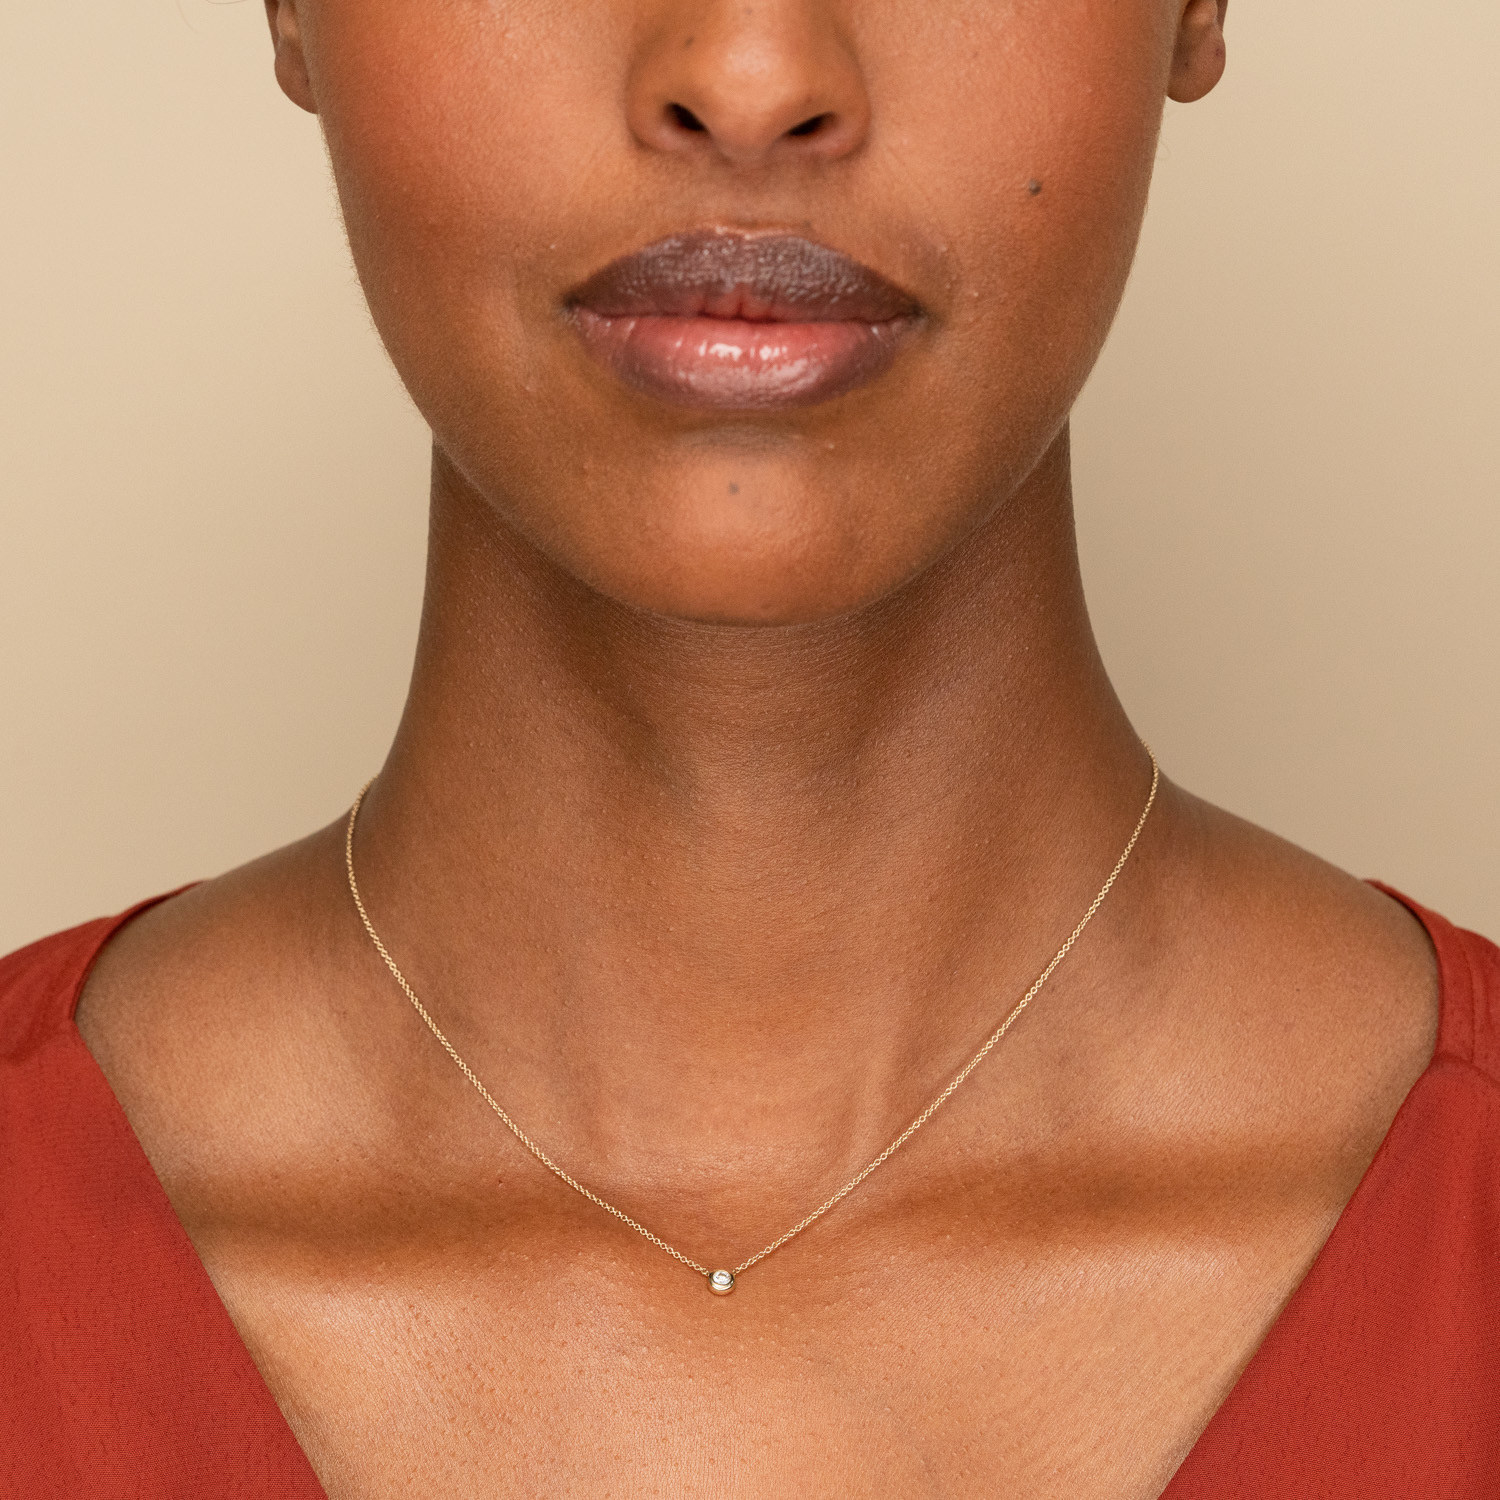 Small round diamond on a gold chain around a model's neck